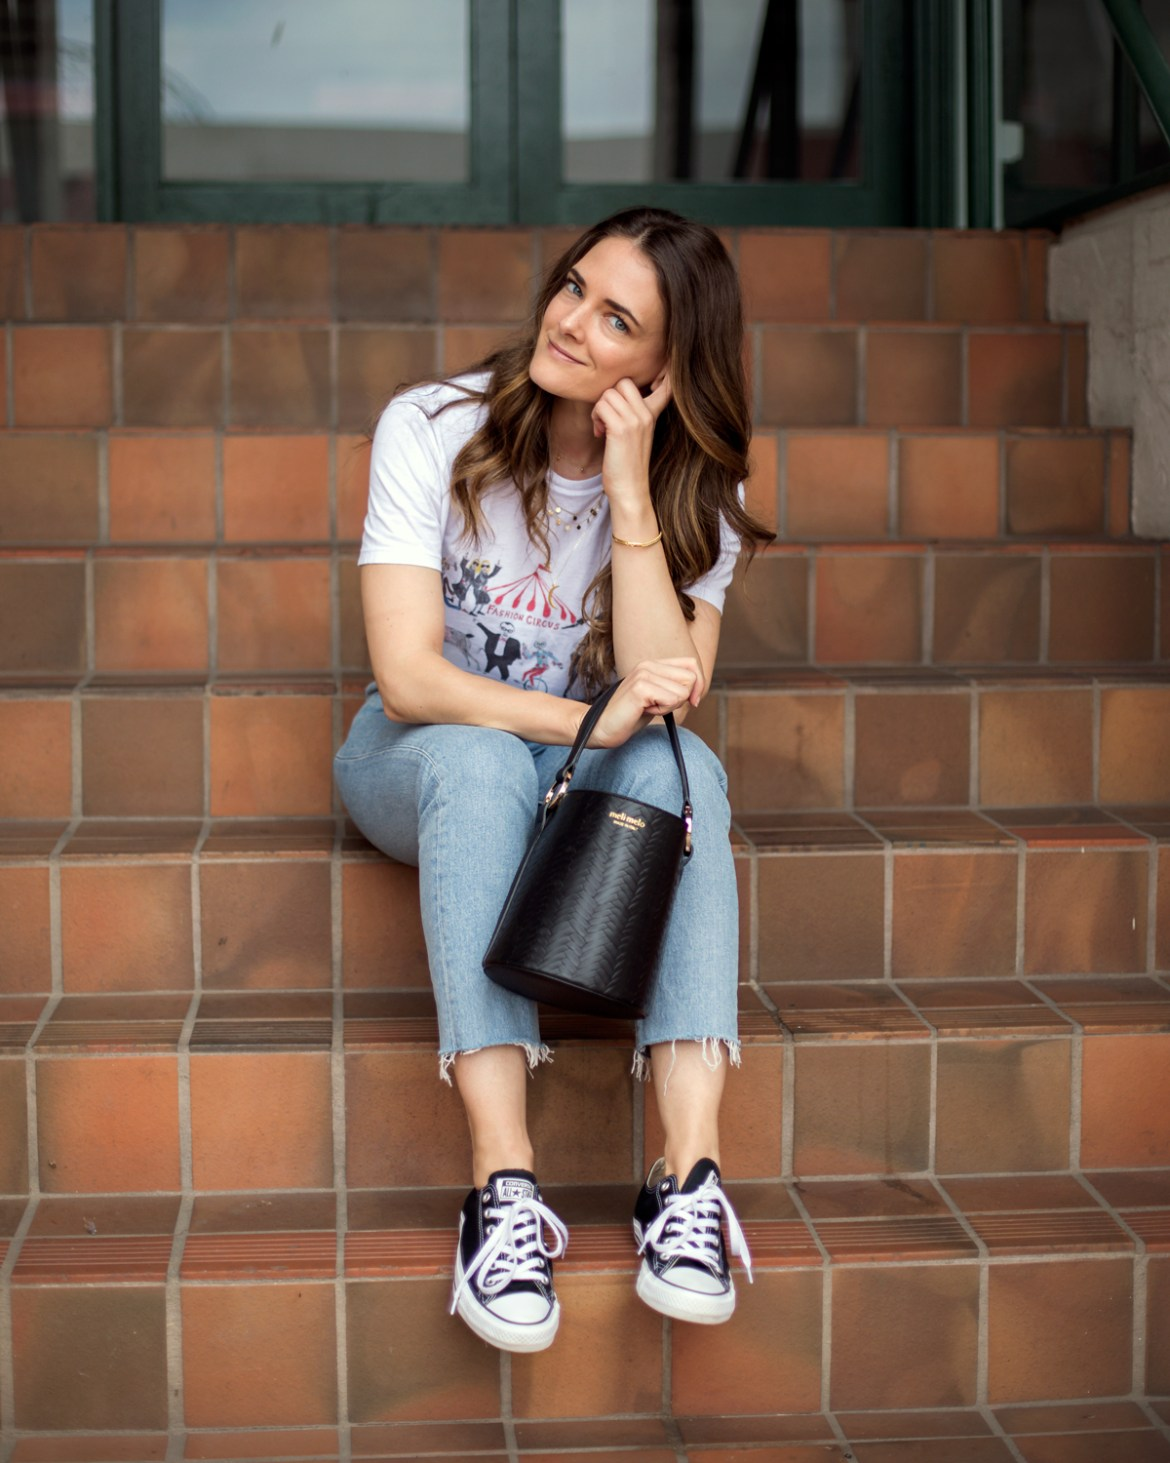 Meli Melo Santina bucket bag in black worn by fashion blogger Jenelle Witty from Inspiring Wit. With Unfortunate Portrait graphic tee, Levi's Wedgie jeans and Converse sneakers from Shopbop and Astley Clarke gold Mille Bangle